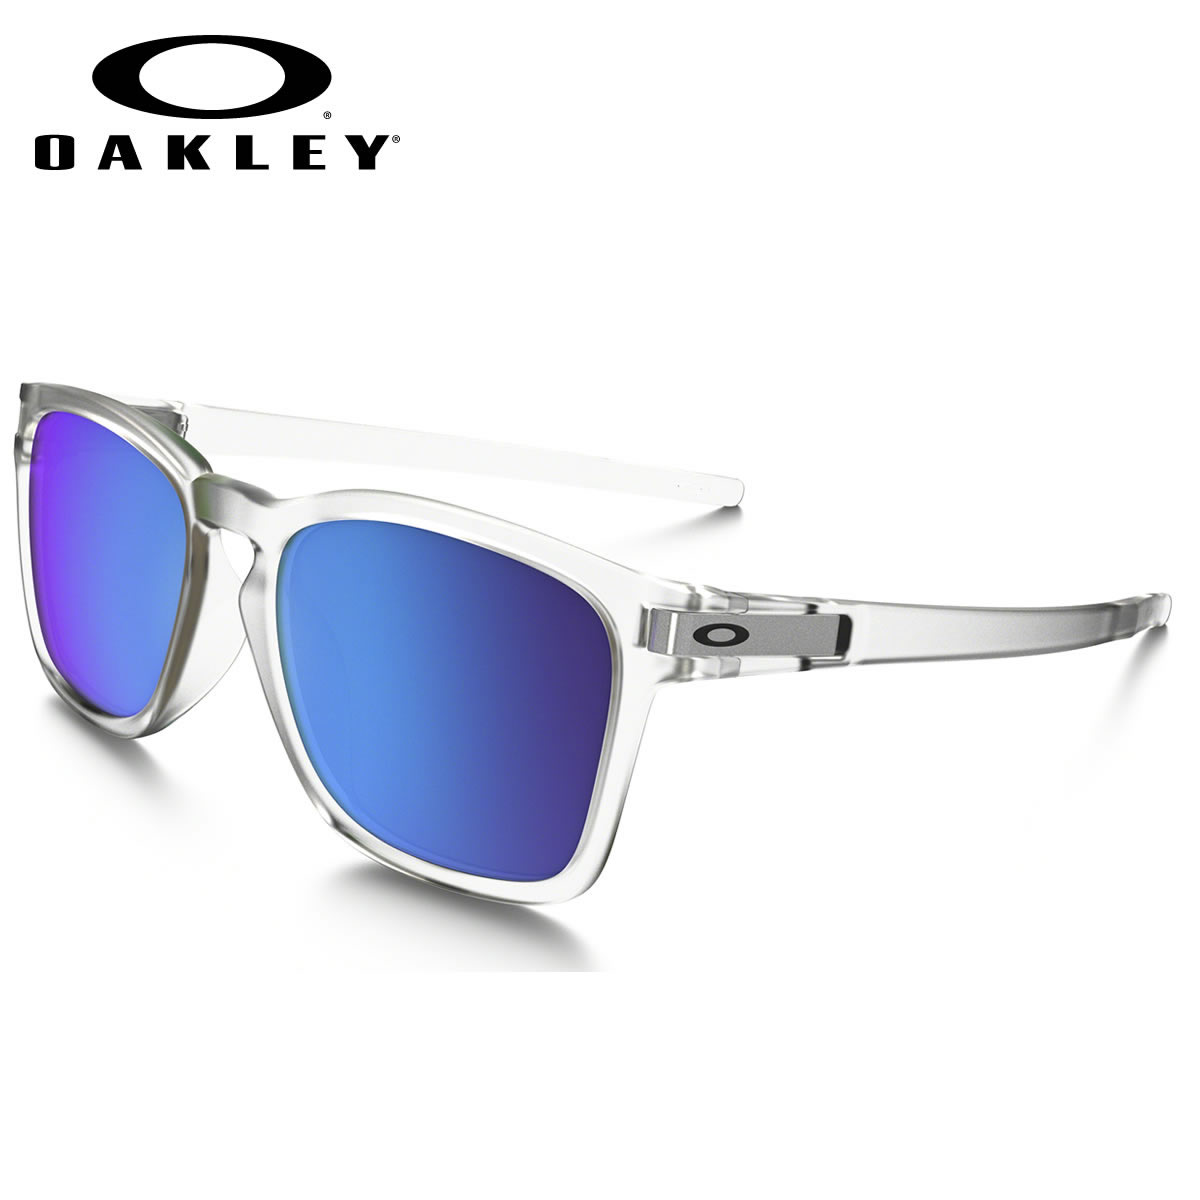 92d7c93703b Up to 10 6 (Thursday) 1 59 (OAKLEY) women s OAKLEY men s and casual latch  Asian fit sunglasses OO9358-04 LATCH SQUARE ASIA FIT